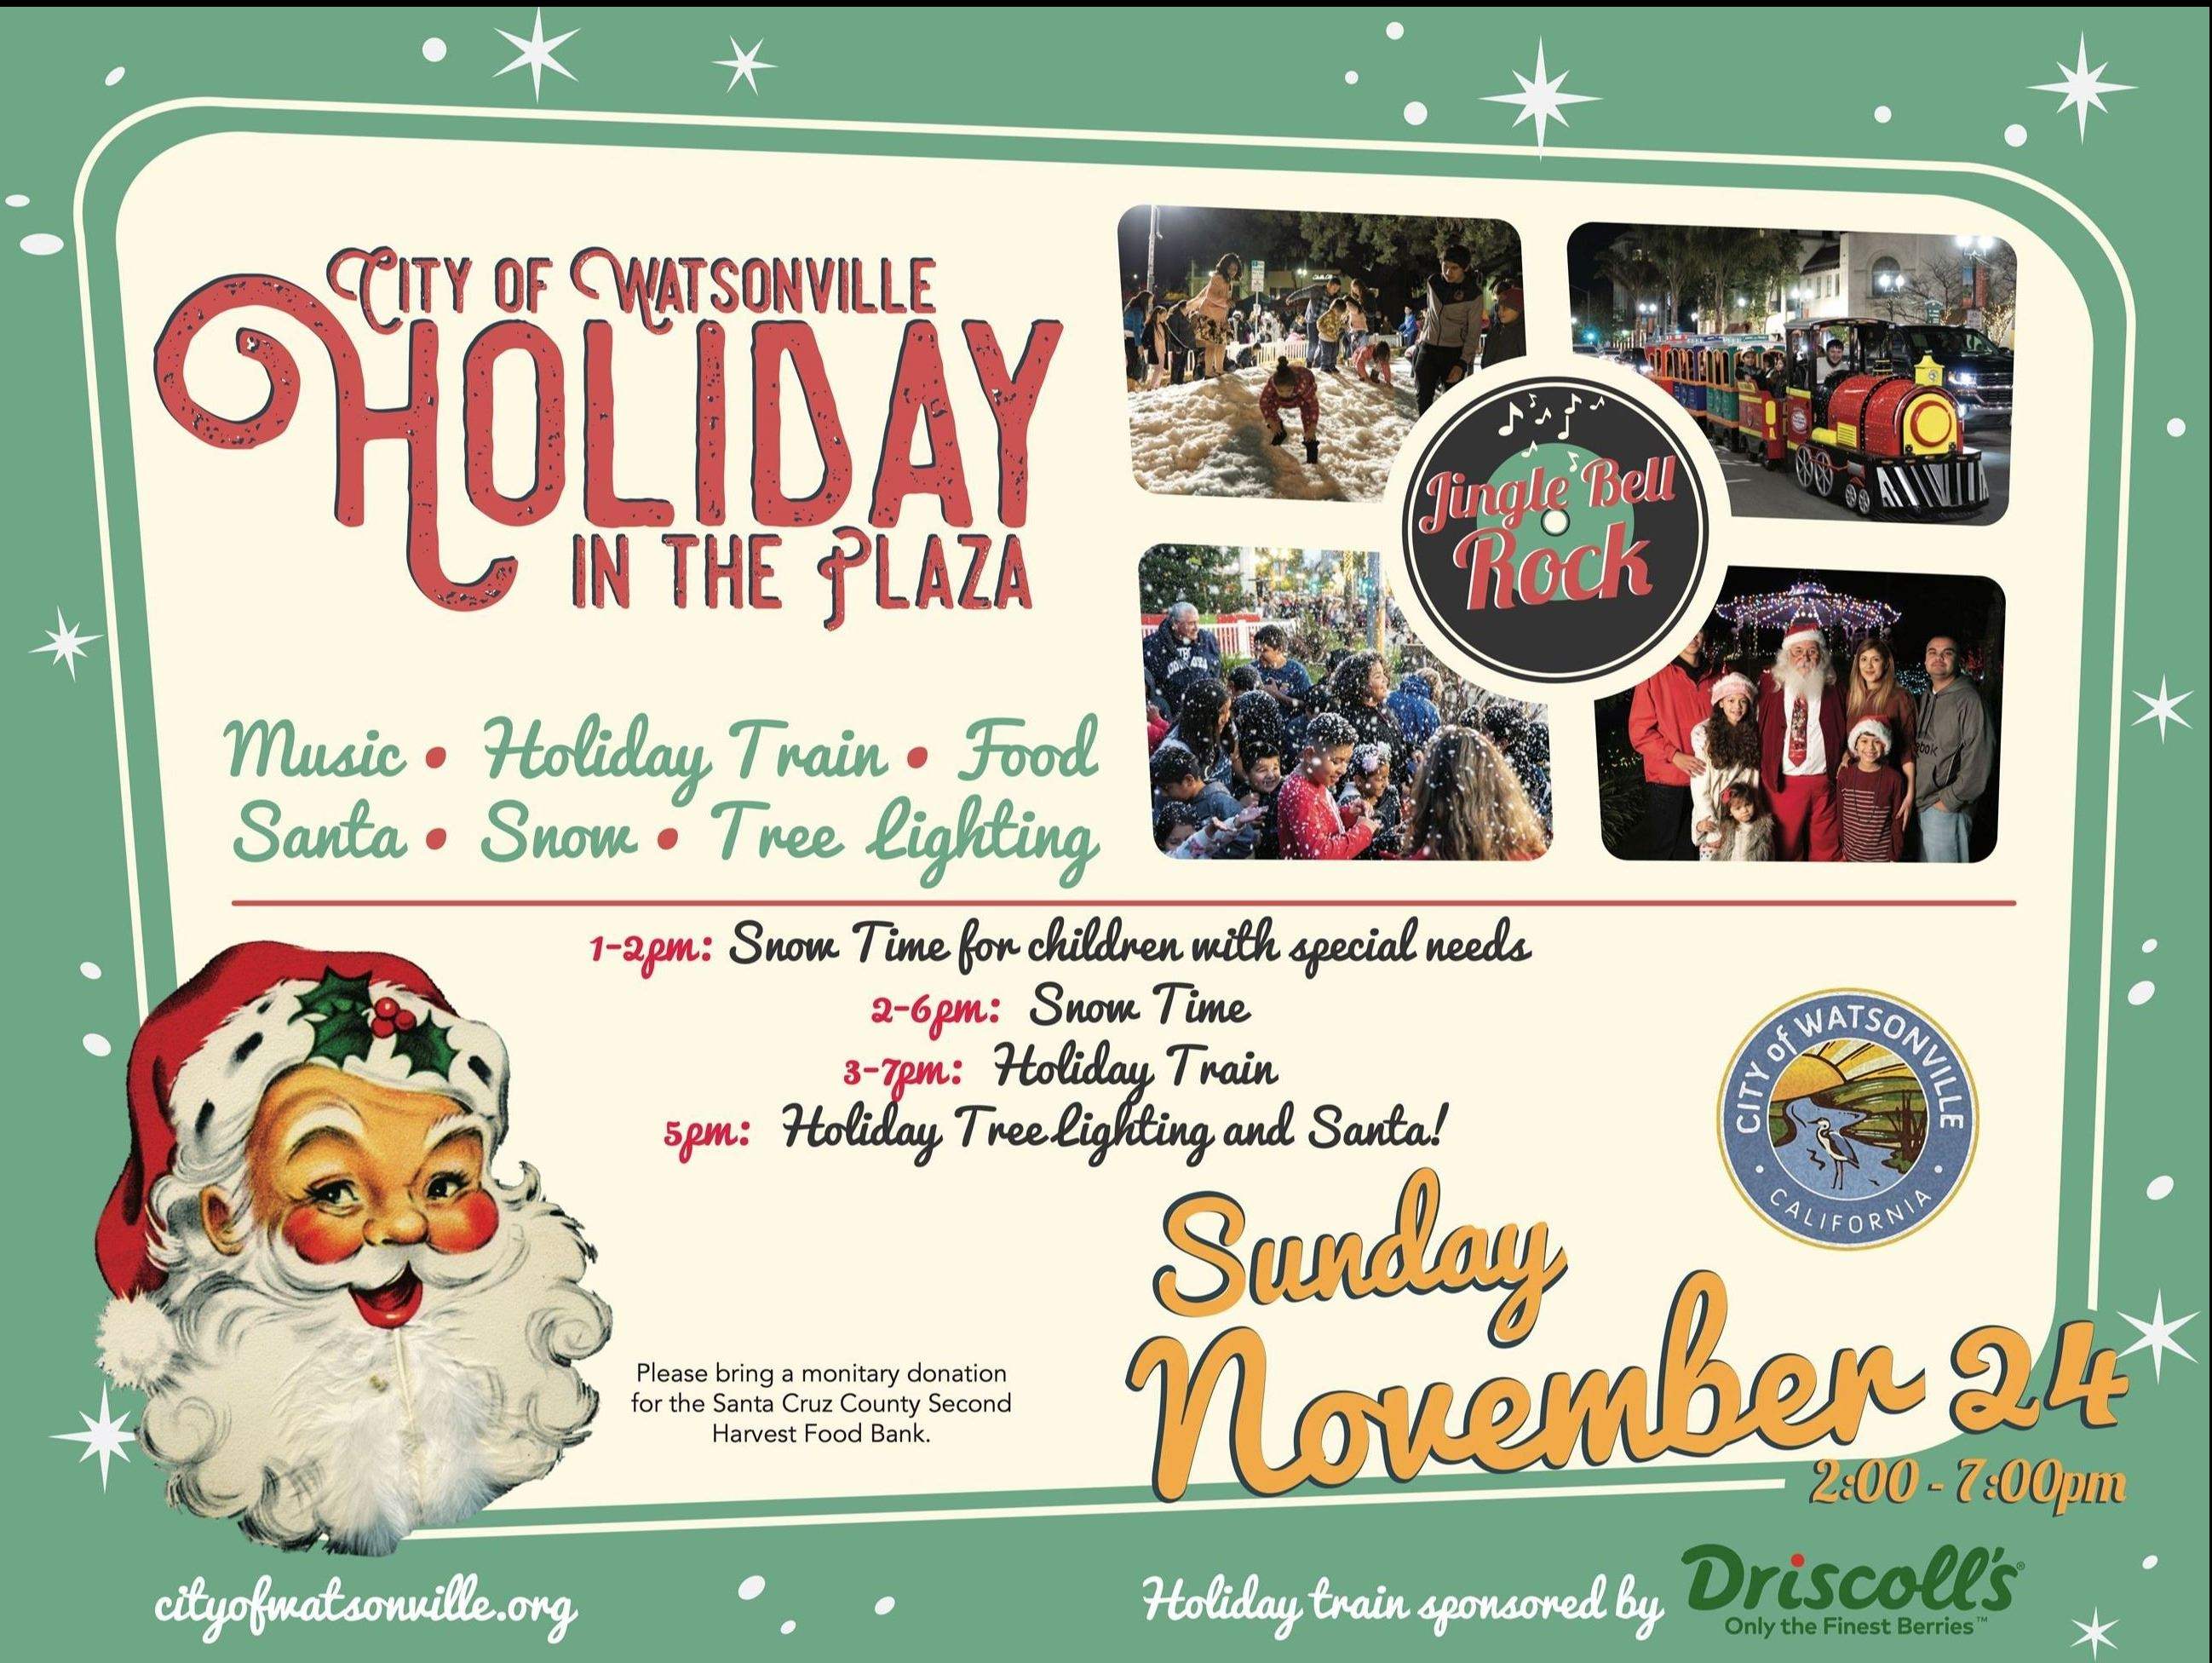 Holiday in the Plaza Approved Final Flyer